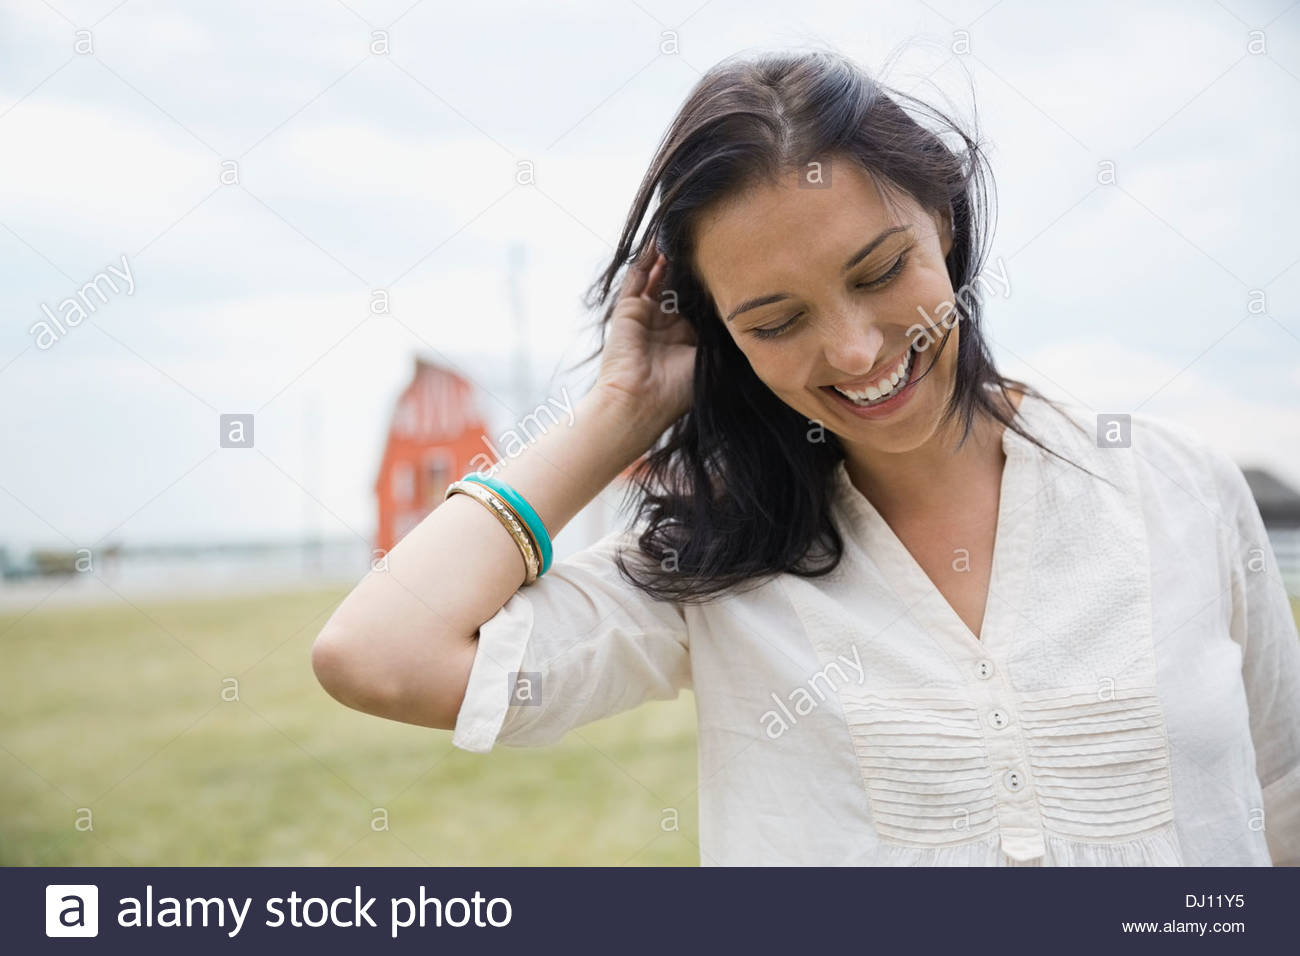 Portrait of smiling woman outdoors Photo Stock